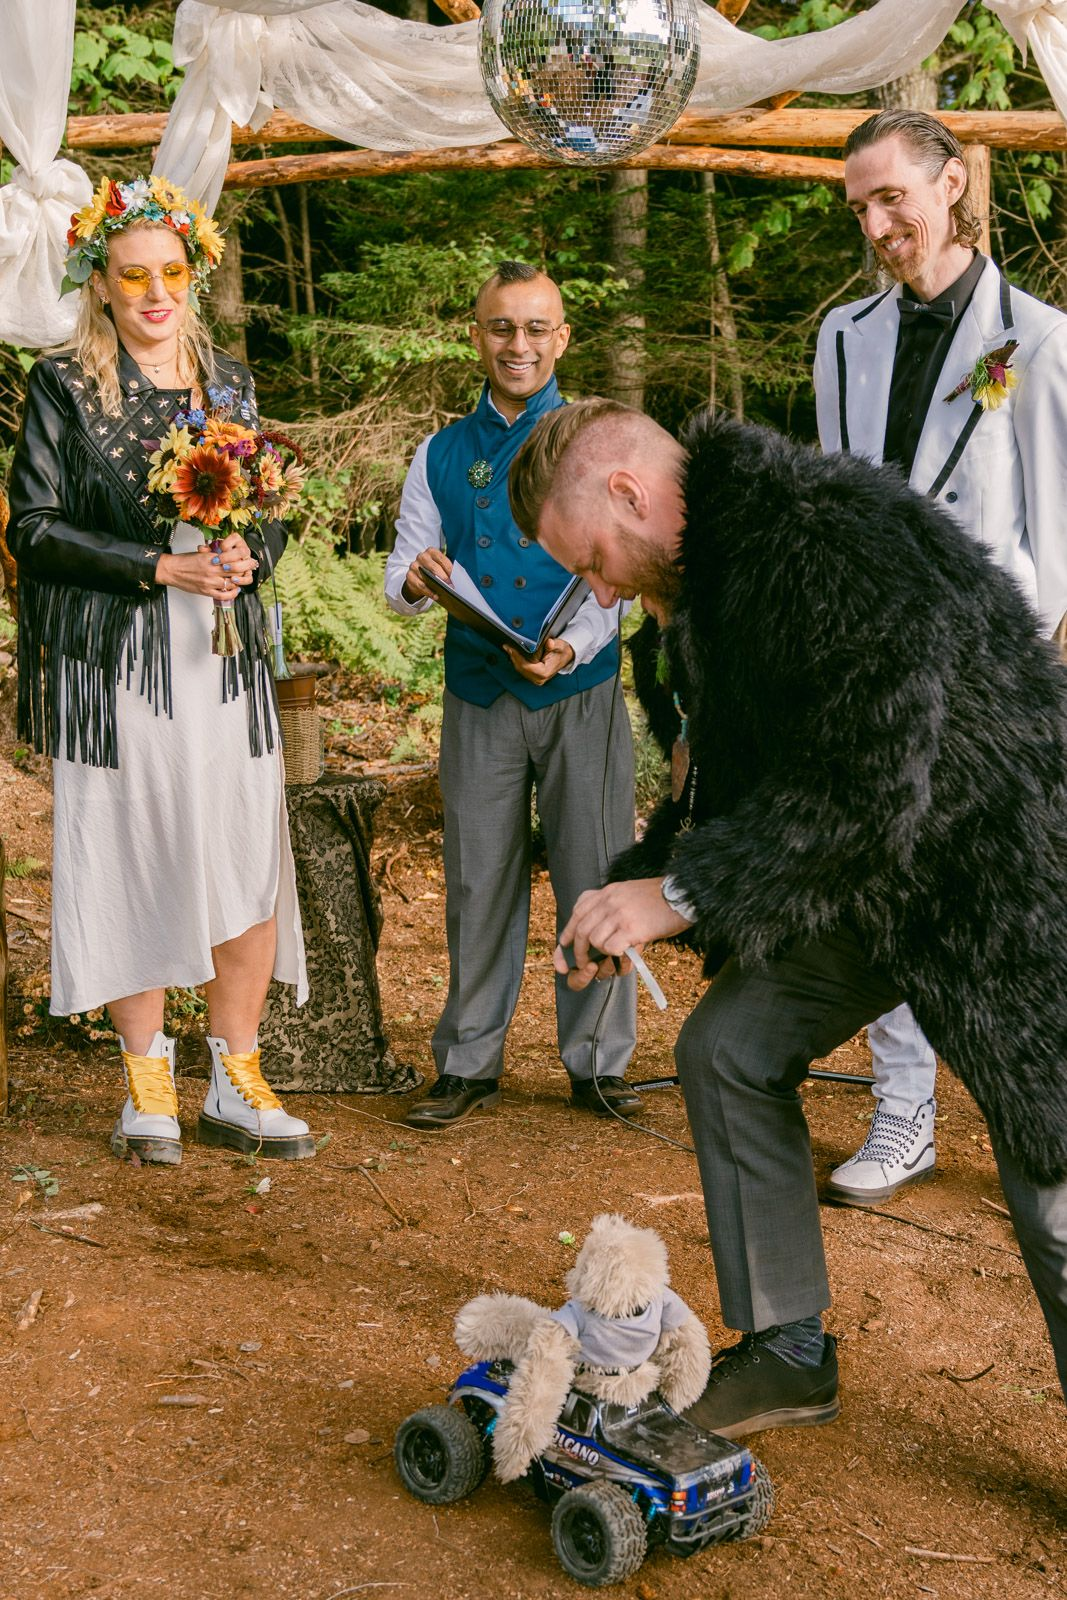 Ring arriving at a wedding on a stuffed animal sloth